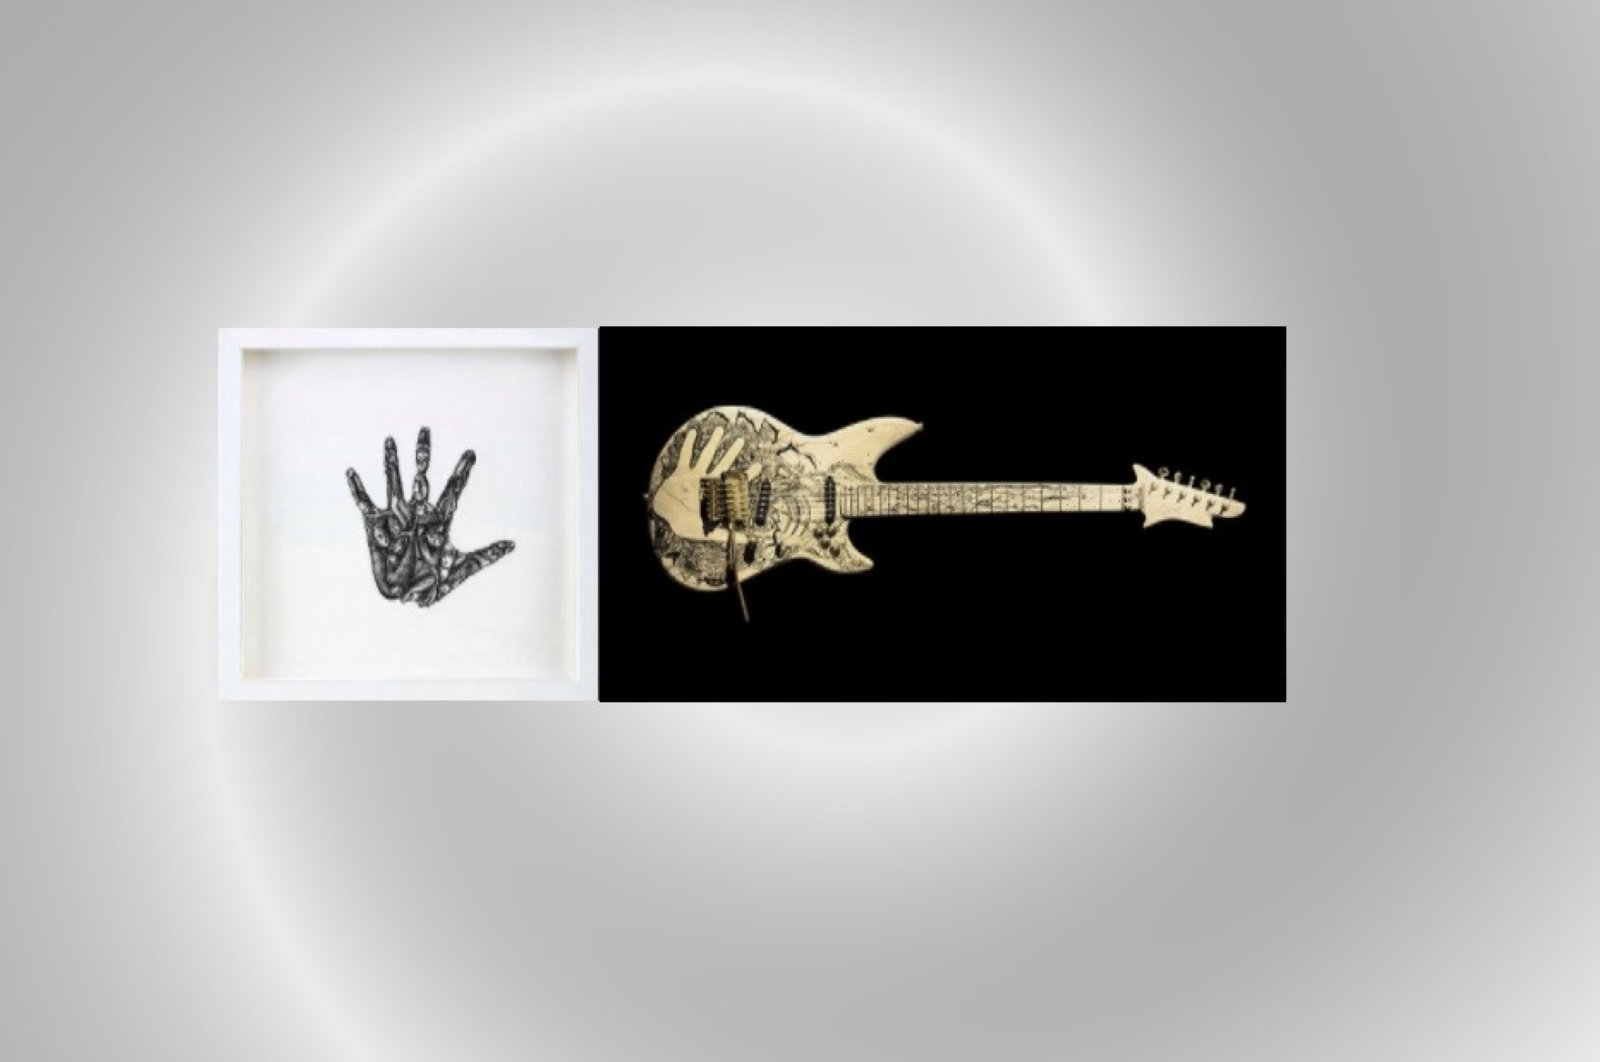 """Ayça Telgeren's """"Shark Guitar"""" at """"Almost There"""" online exhibit. (Courtesy of British Council)"""